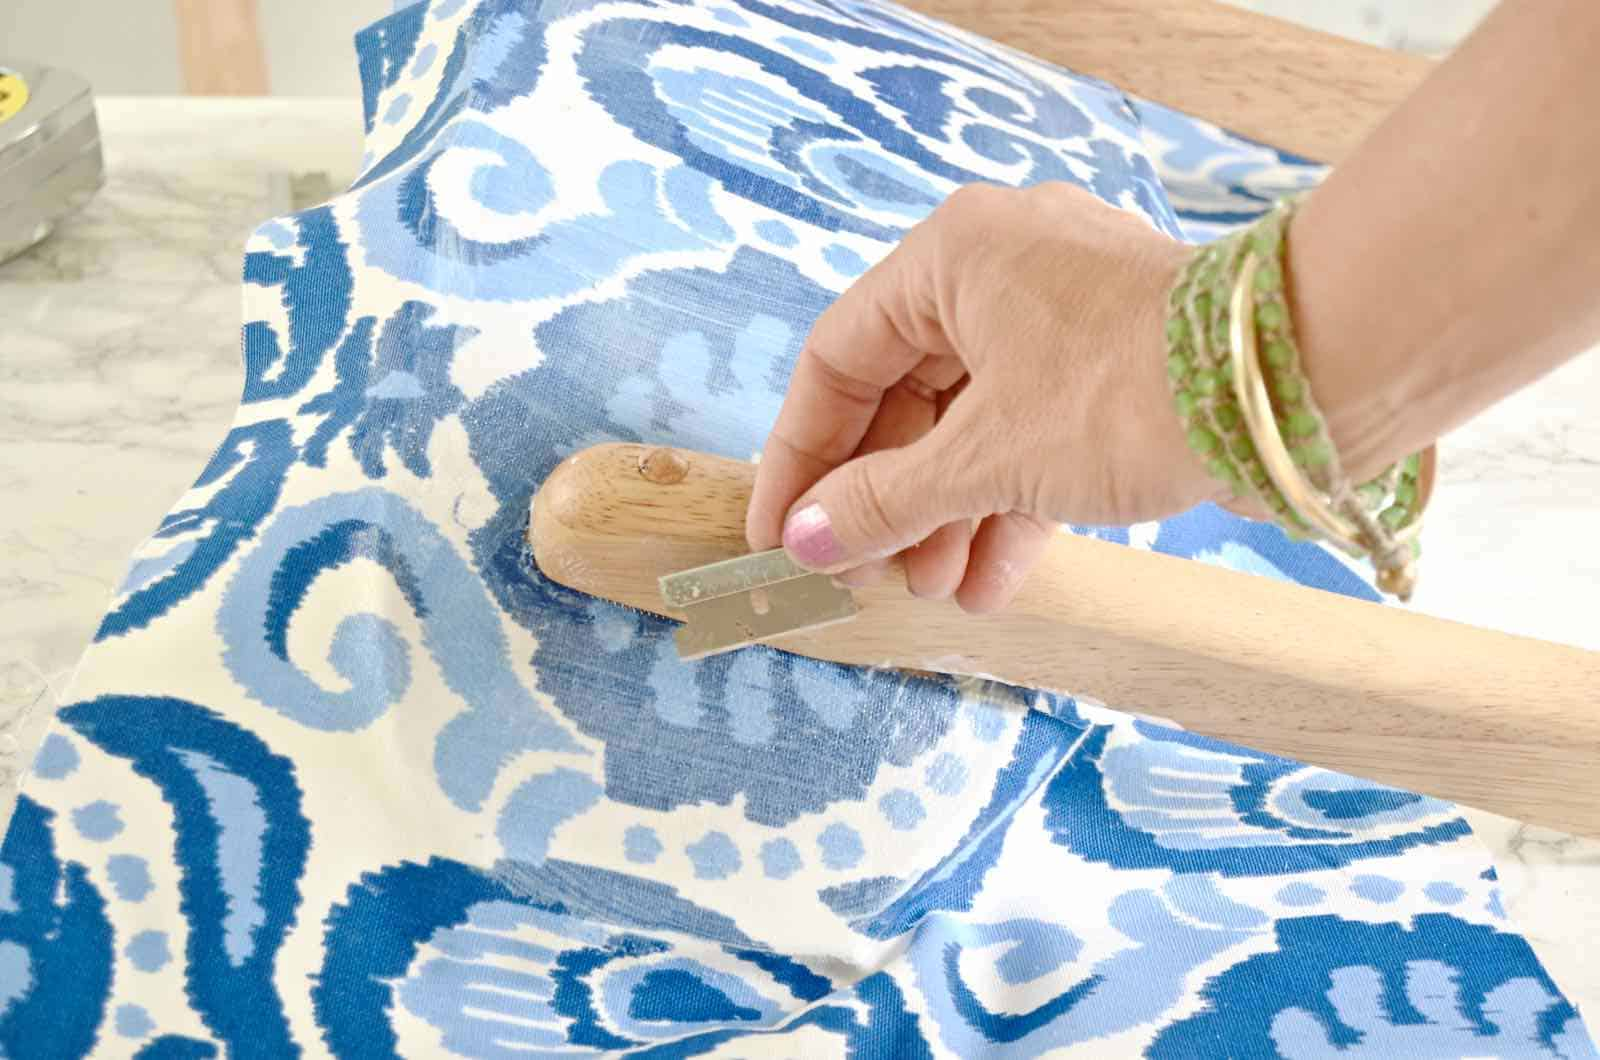 use a sharp blade to trim fabric around back rest